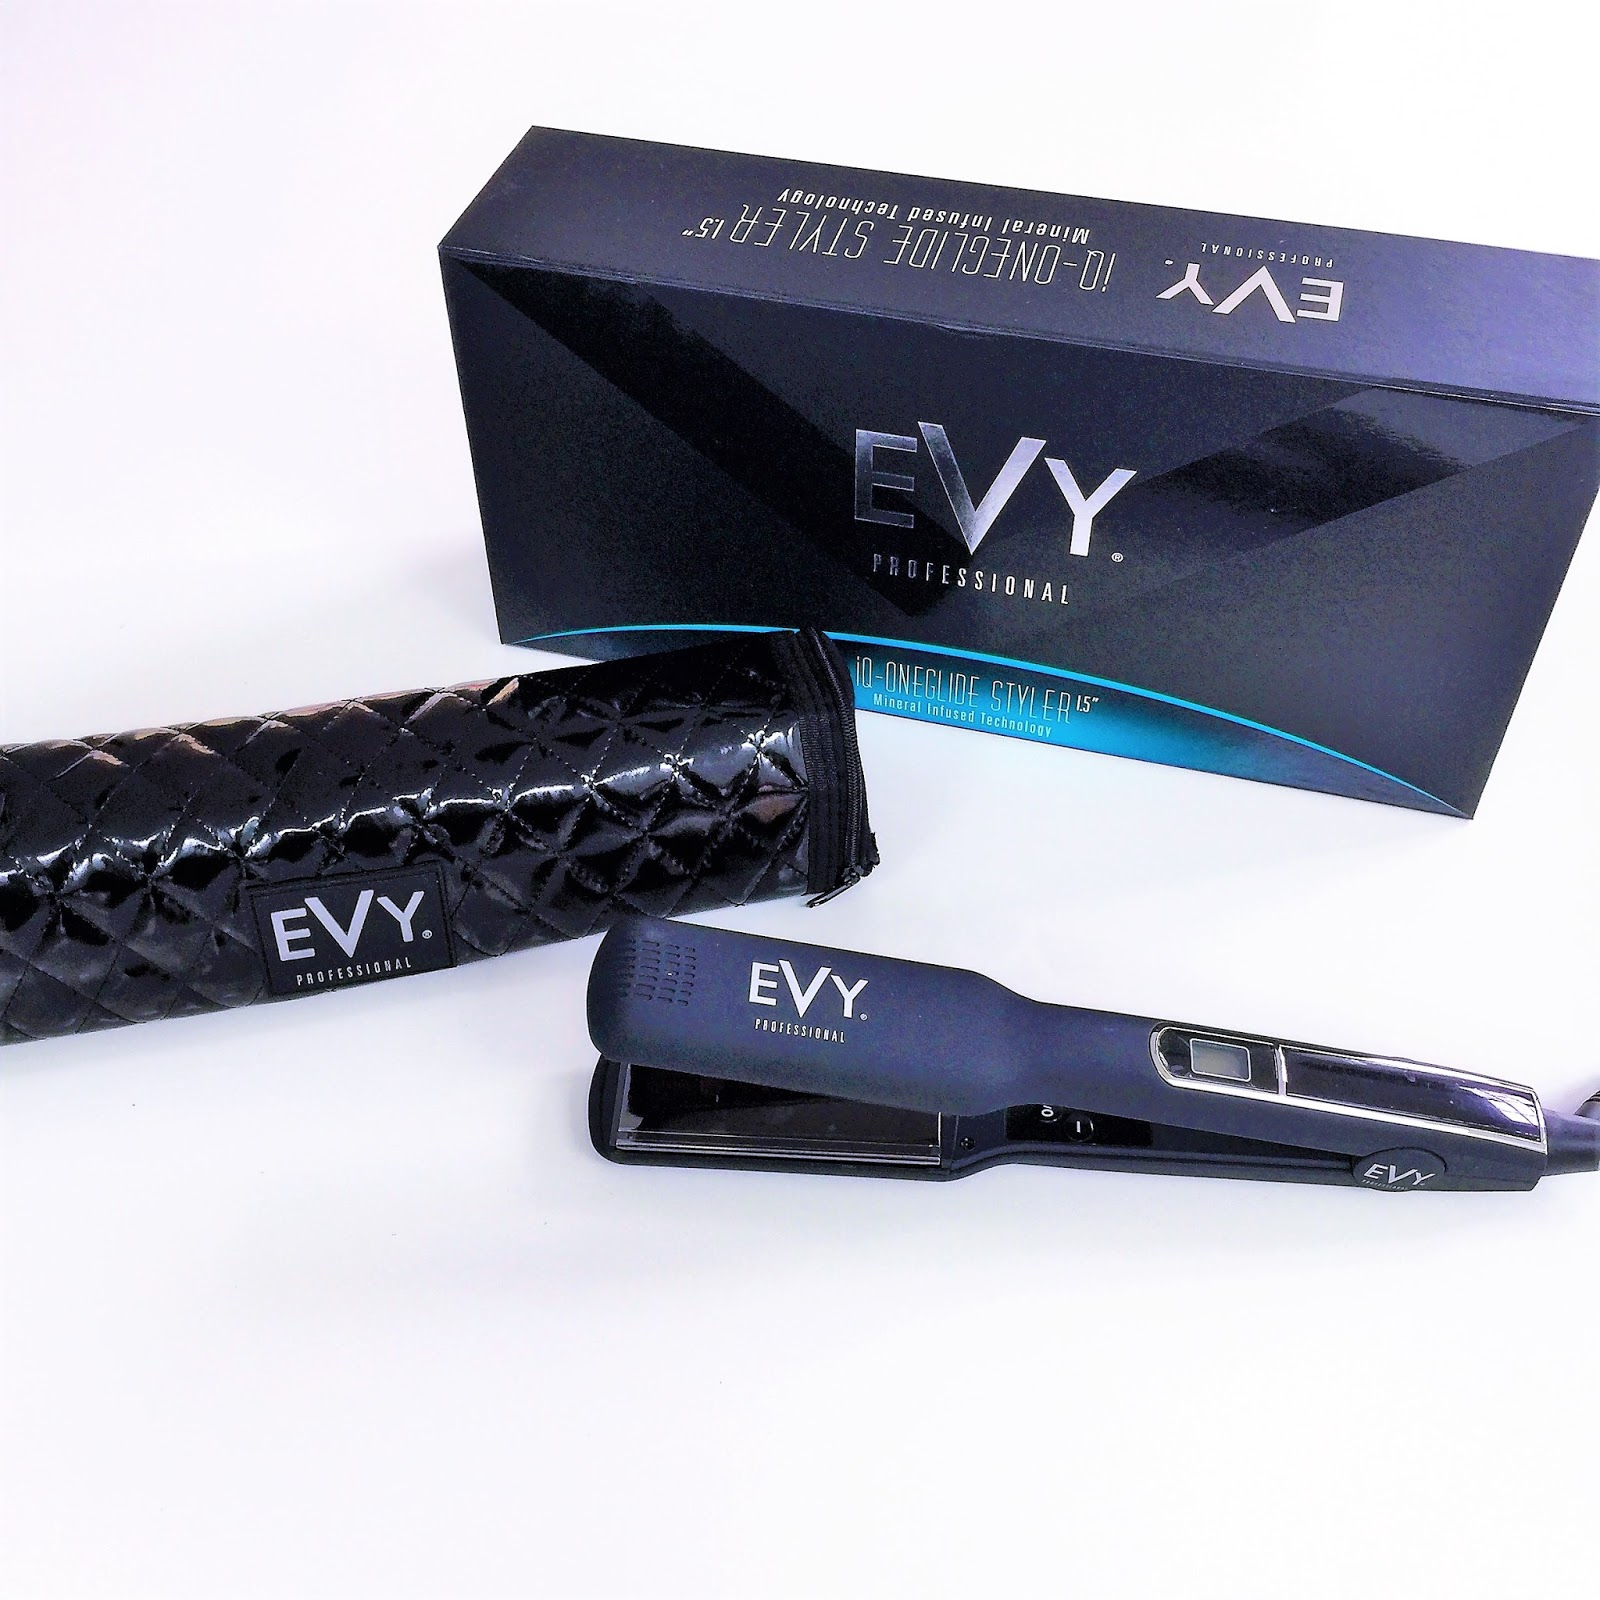 Product Review Evy Iq Oneglide Styler 15 The Beauty Lifestyle